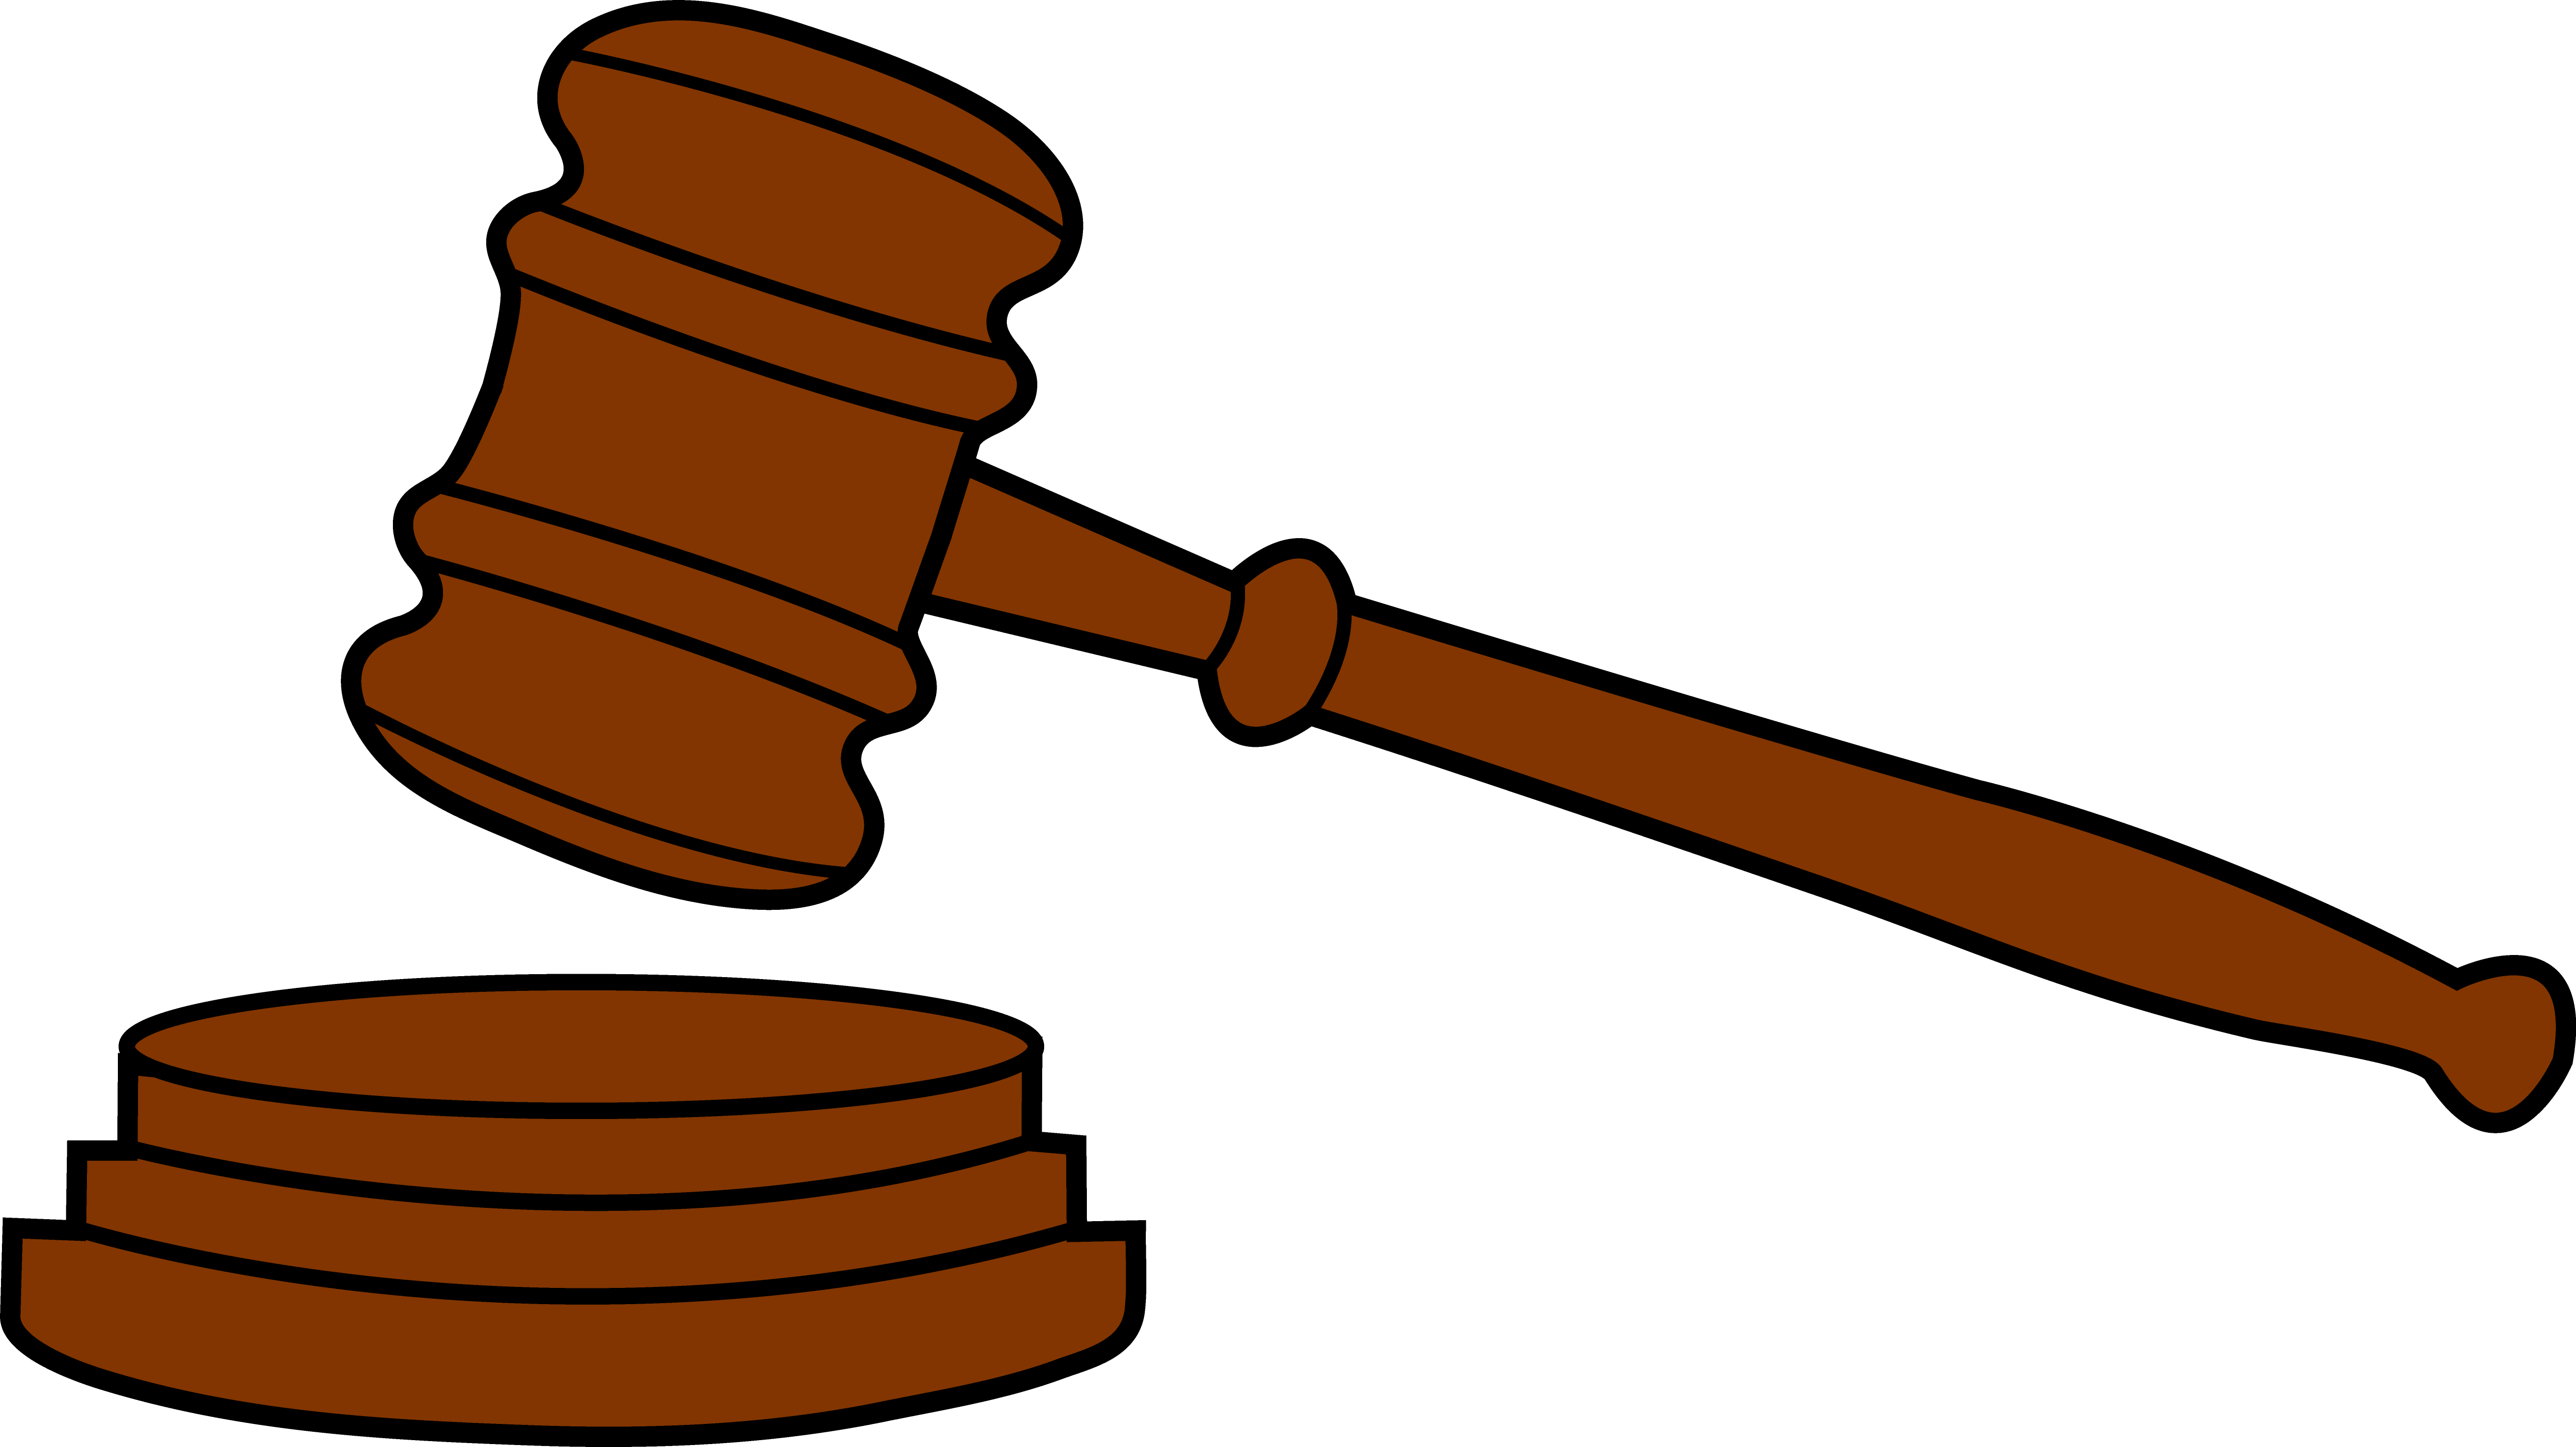 Libra clipart gavel Free Art Pictures Lawyer